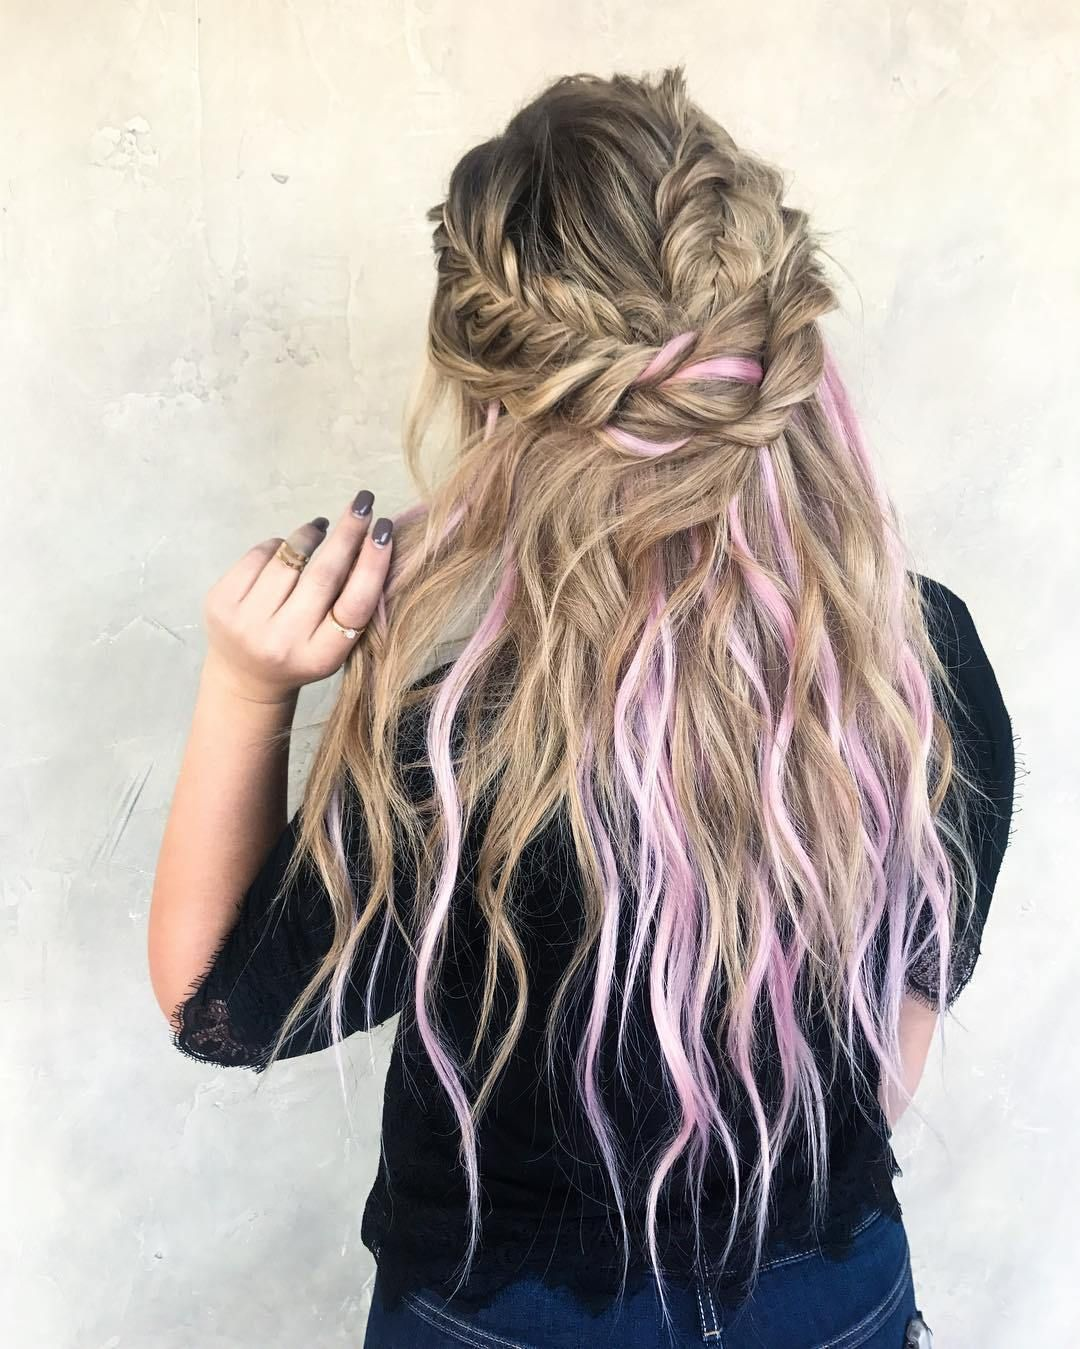 49 Boho Braid Hairstyles to Try